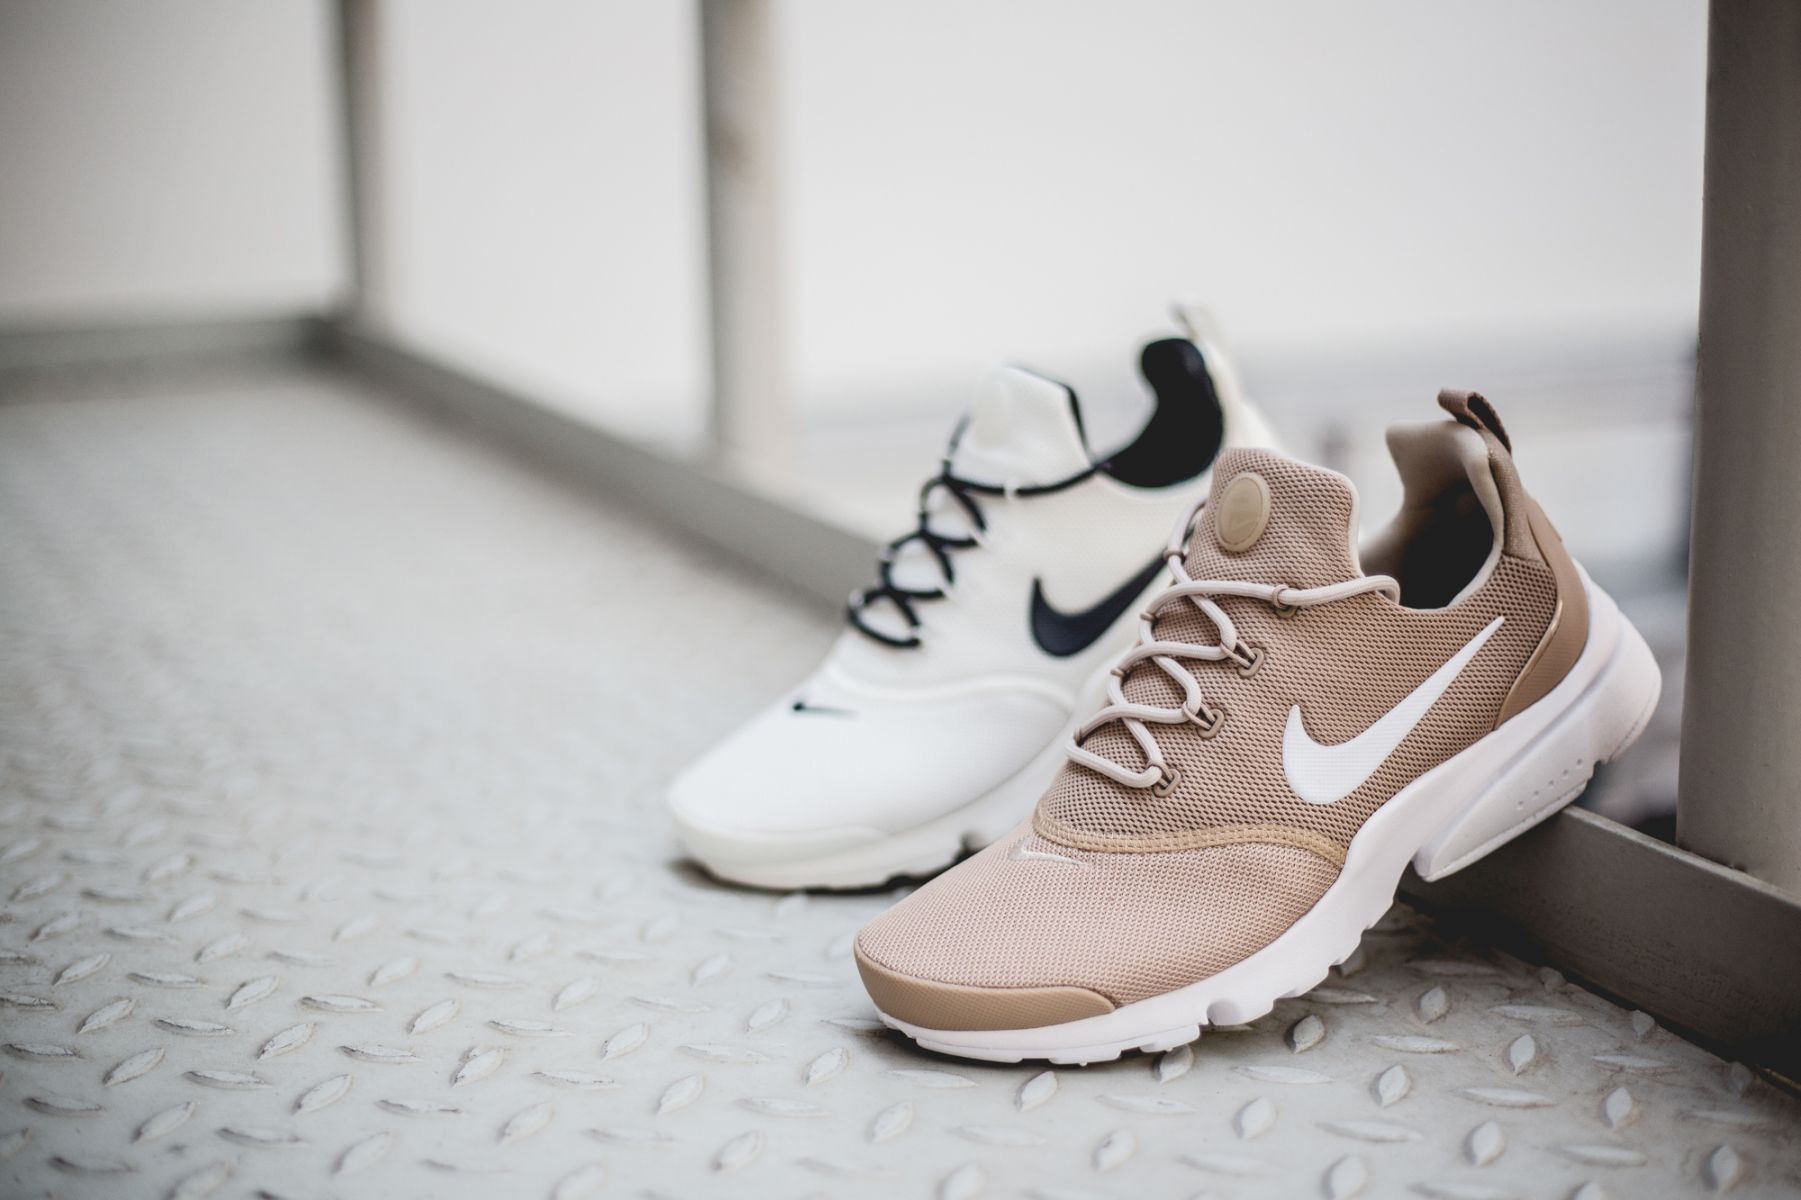 buy popular fdfac 0ad2d Women's Nike Presto Fly Casual Shoes - 910569 910569-100| Finish Line | My  Style | Nike presto, Shoes, Nike